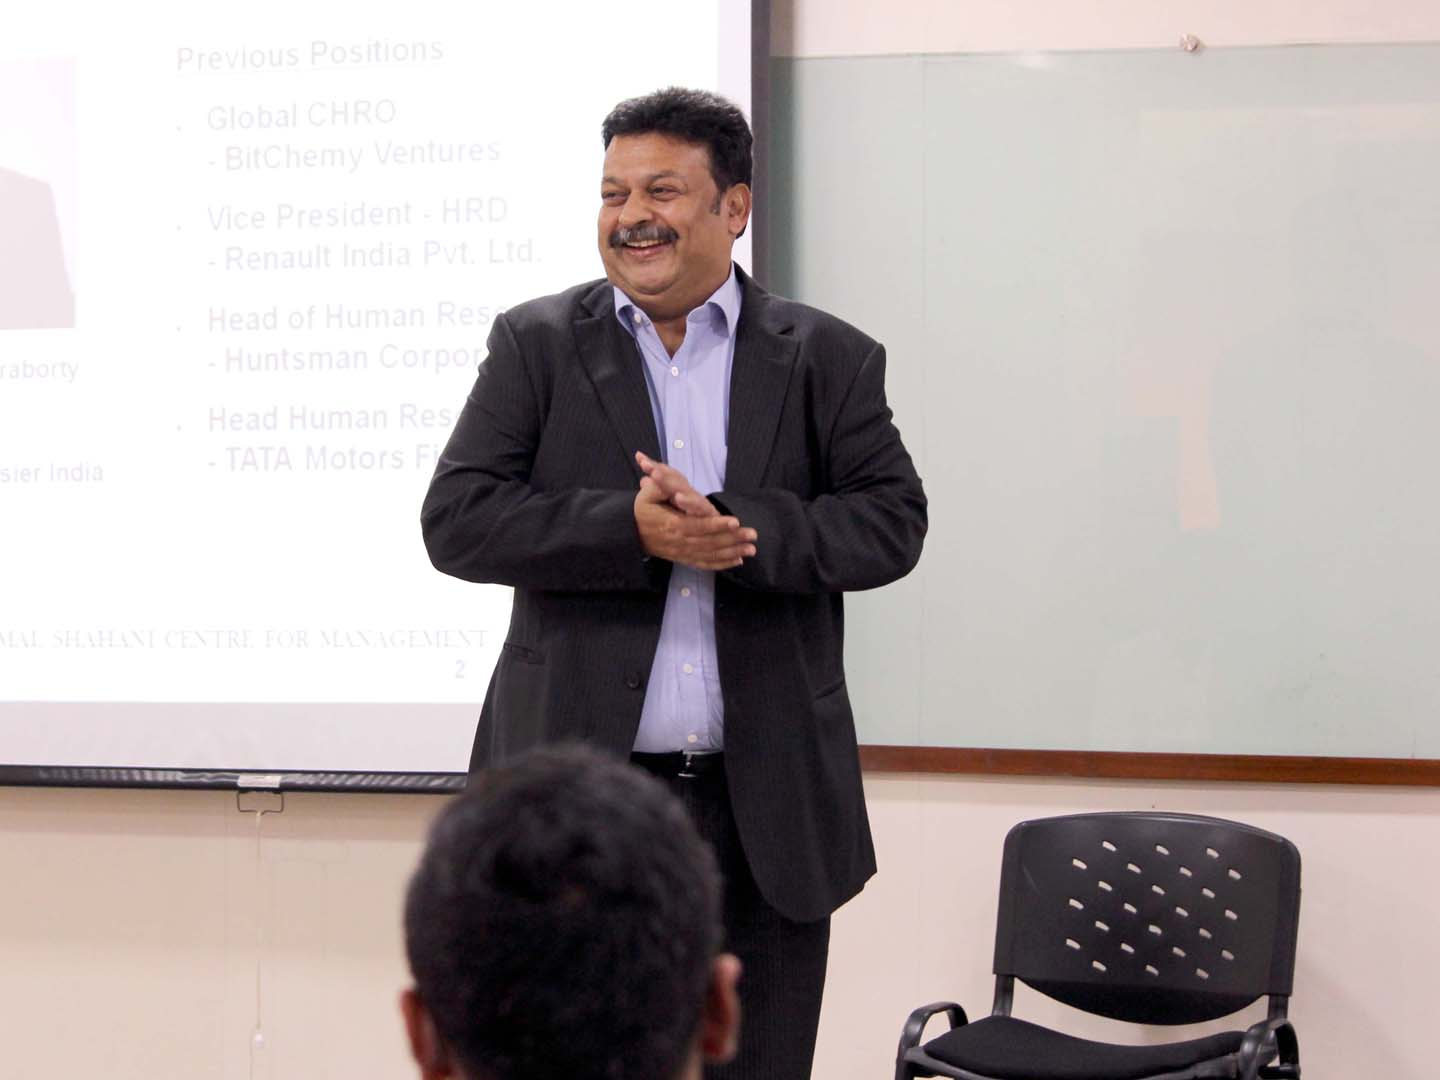 Industry Session By Soum Chakrabourty, Founder, CEO - Corporate Dossier